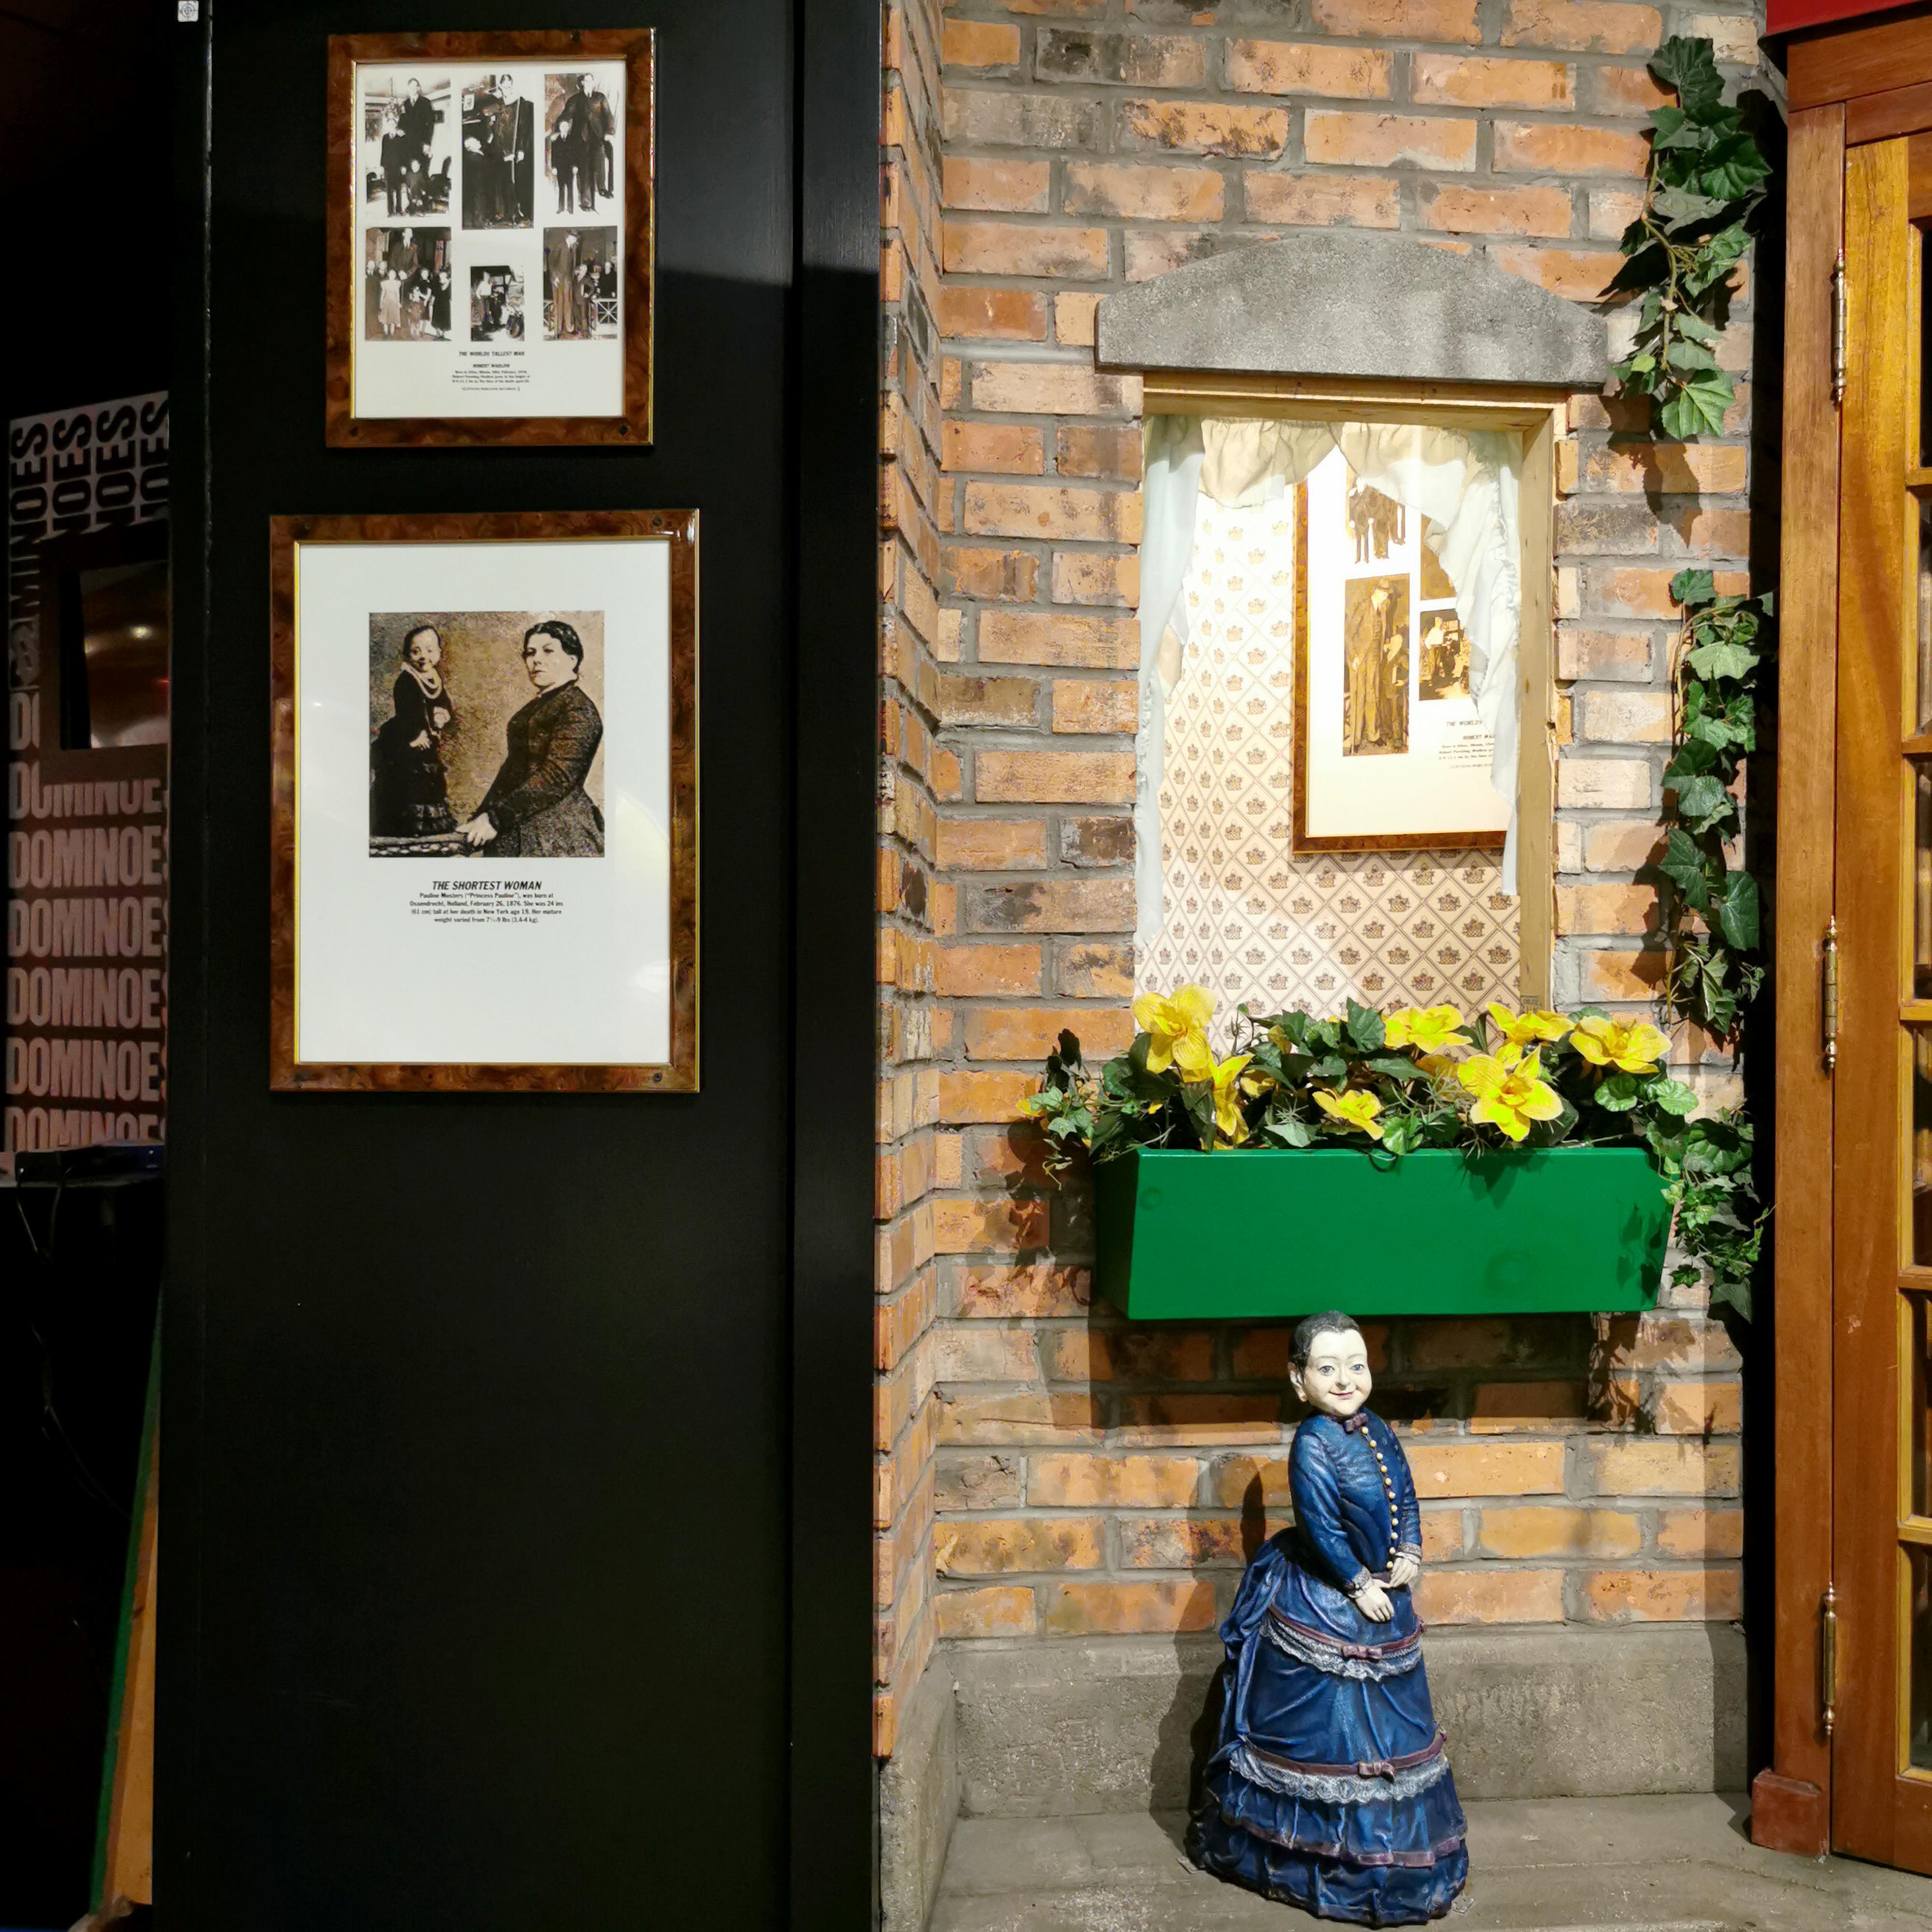 World's Smallest Woman Character Guinness Museum Display